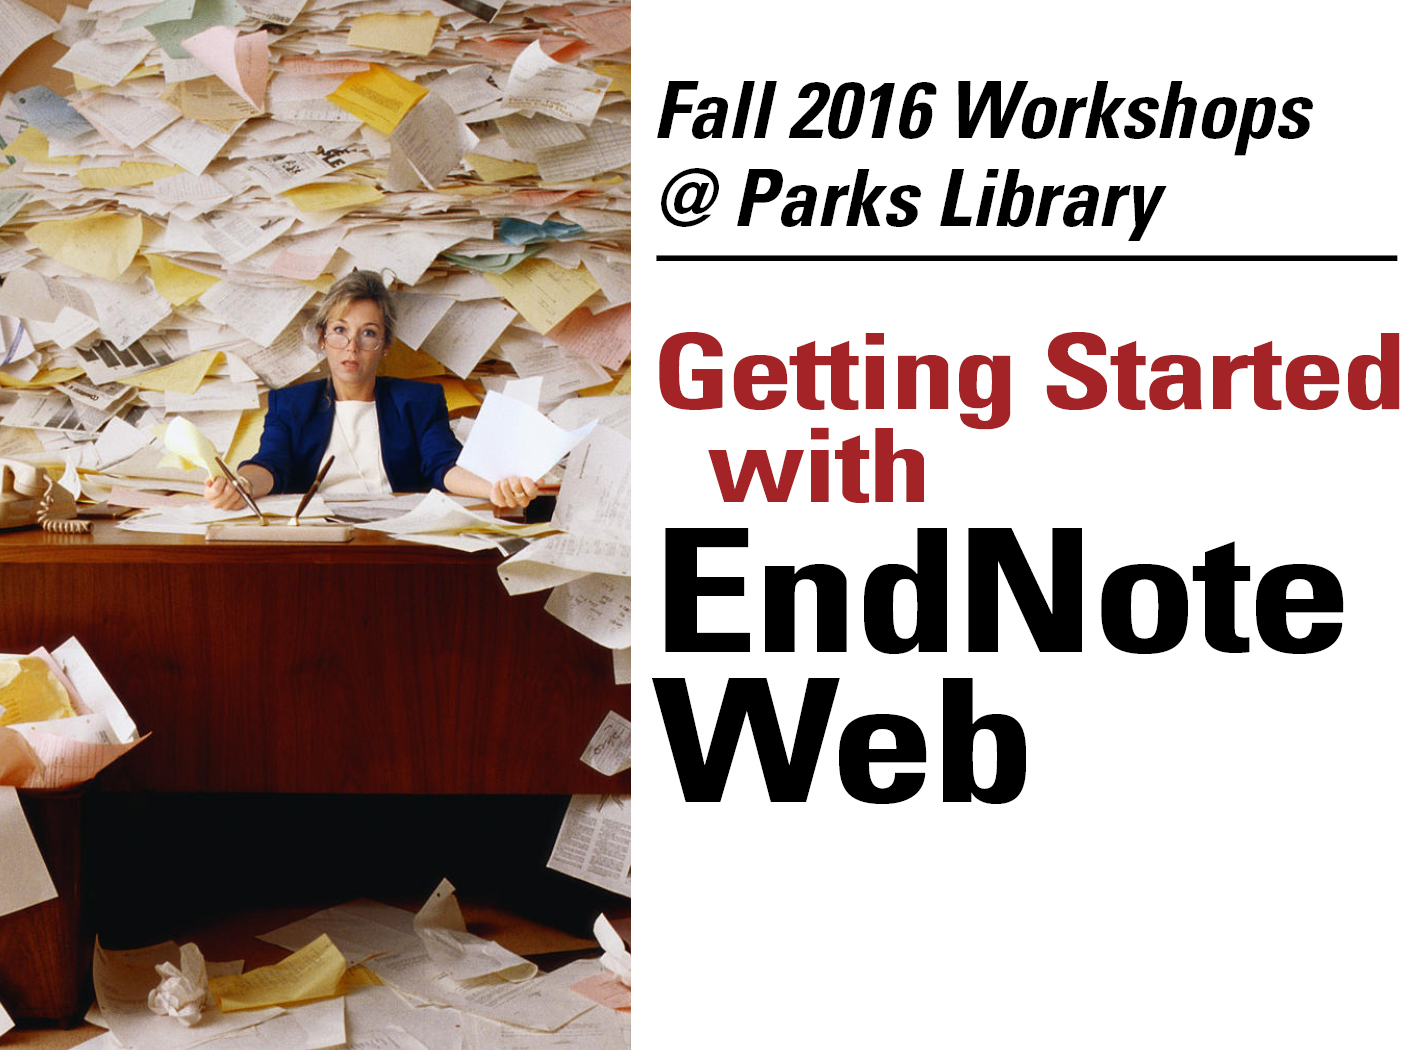 Woman at desk with piles of paper around her. Fall 2016 Workshops at Parks Library. Getting Started with EndNote Web.